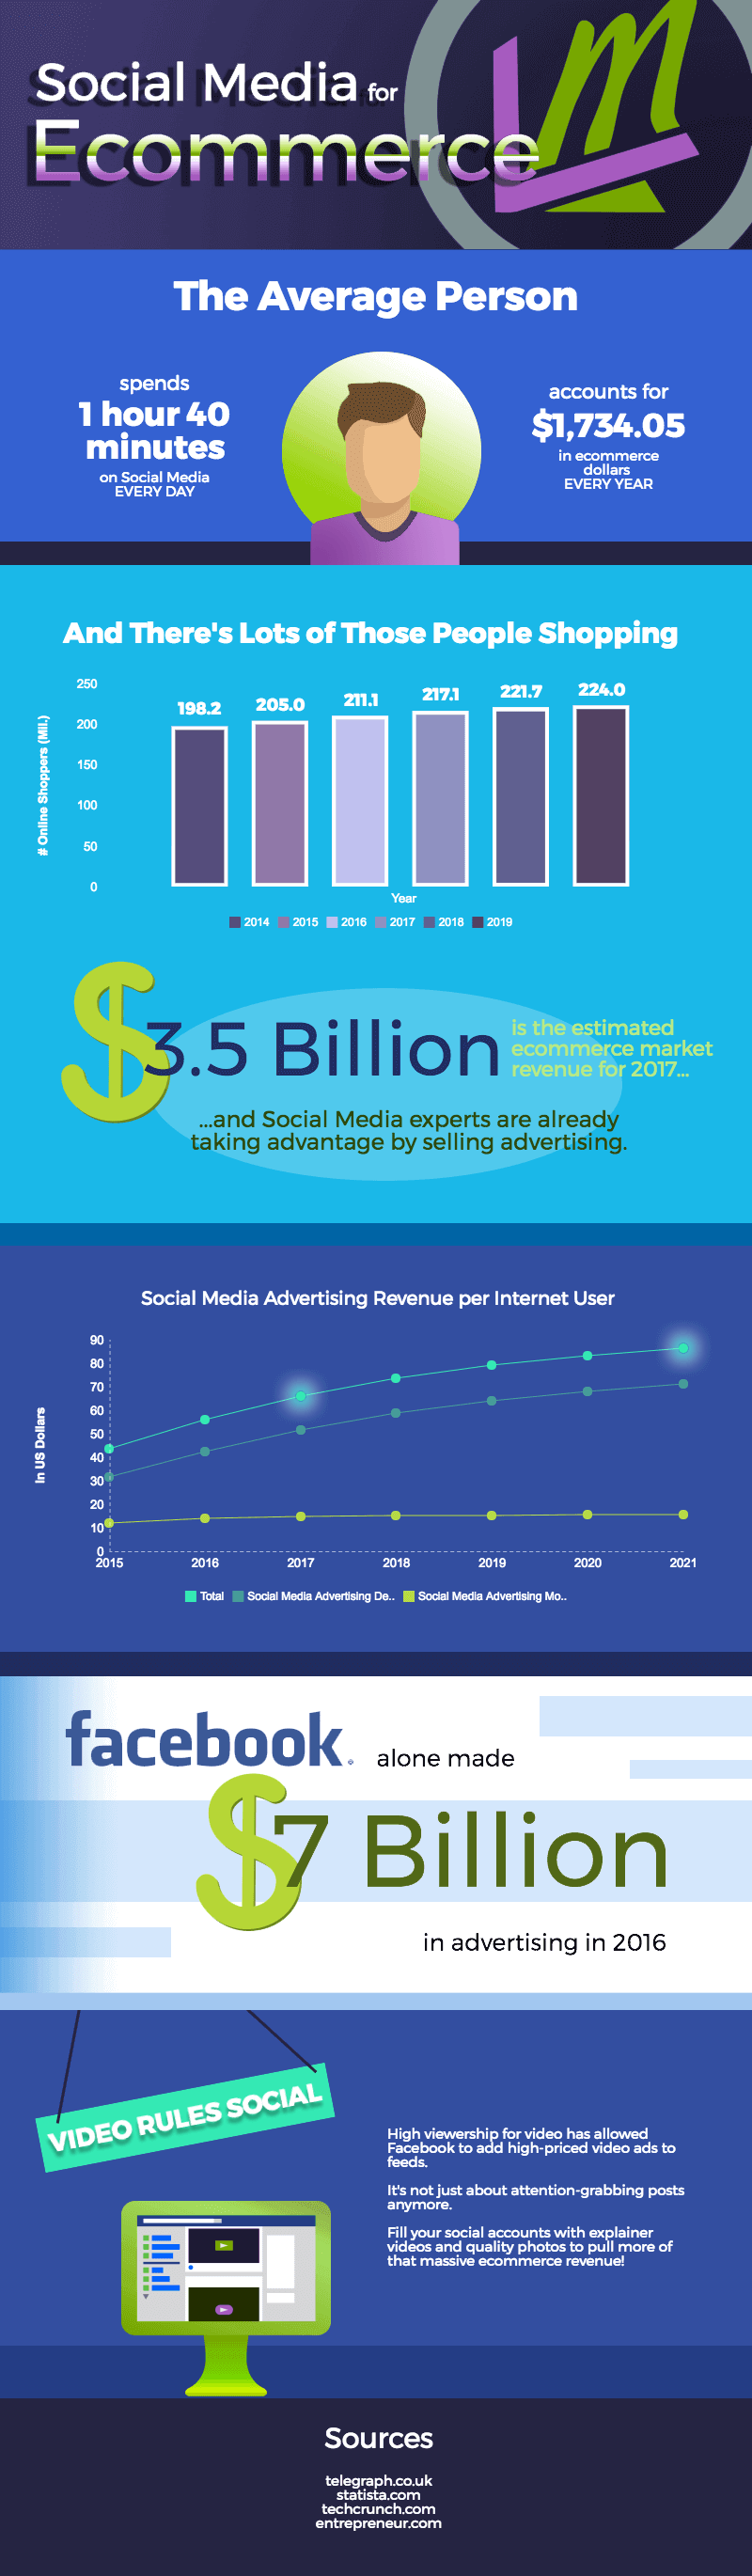 how to use social media for ecommerce facts and statistics infographic